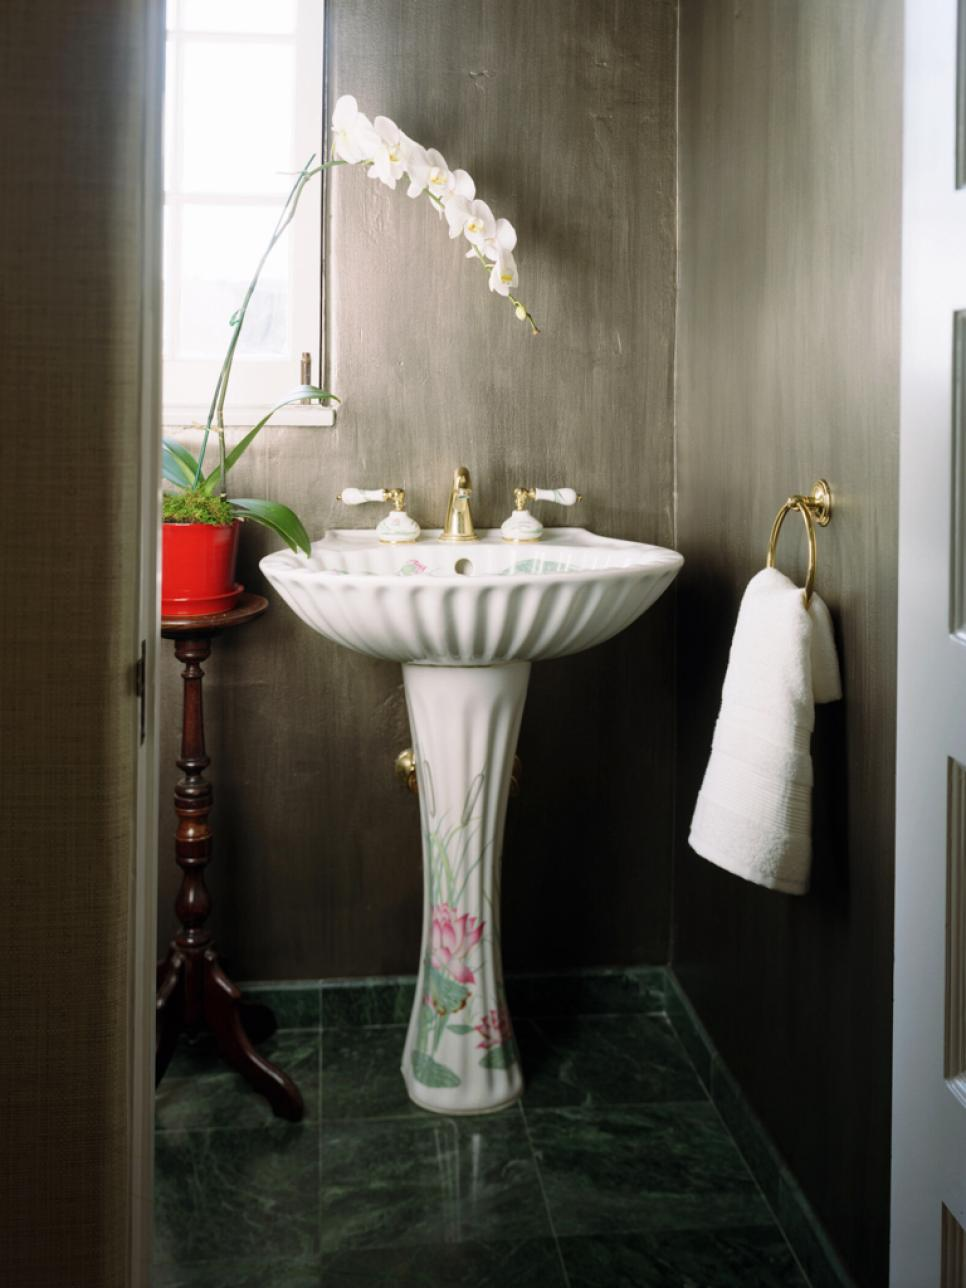 Tiny Powder Room Designs: Powder Room Designs